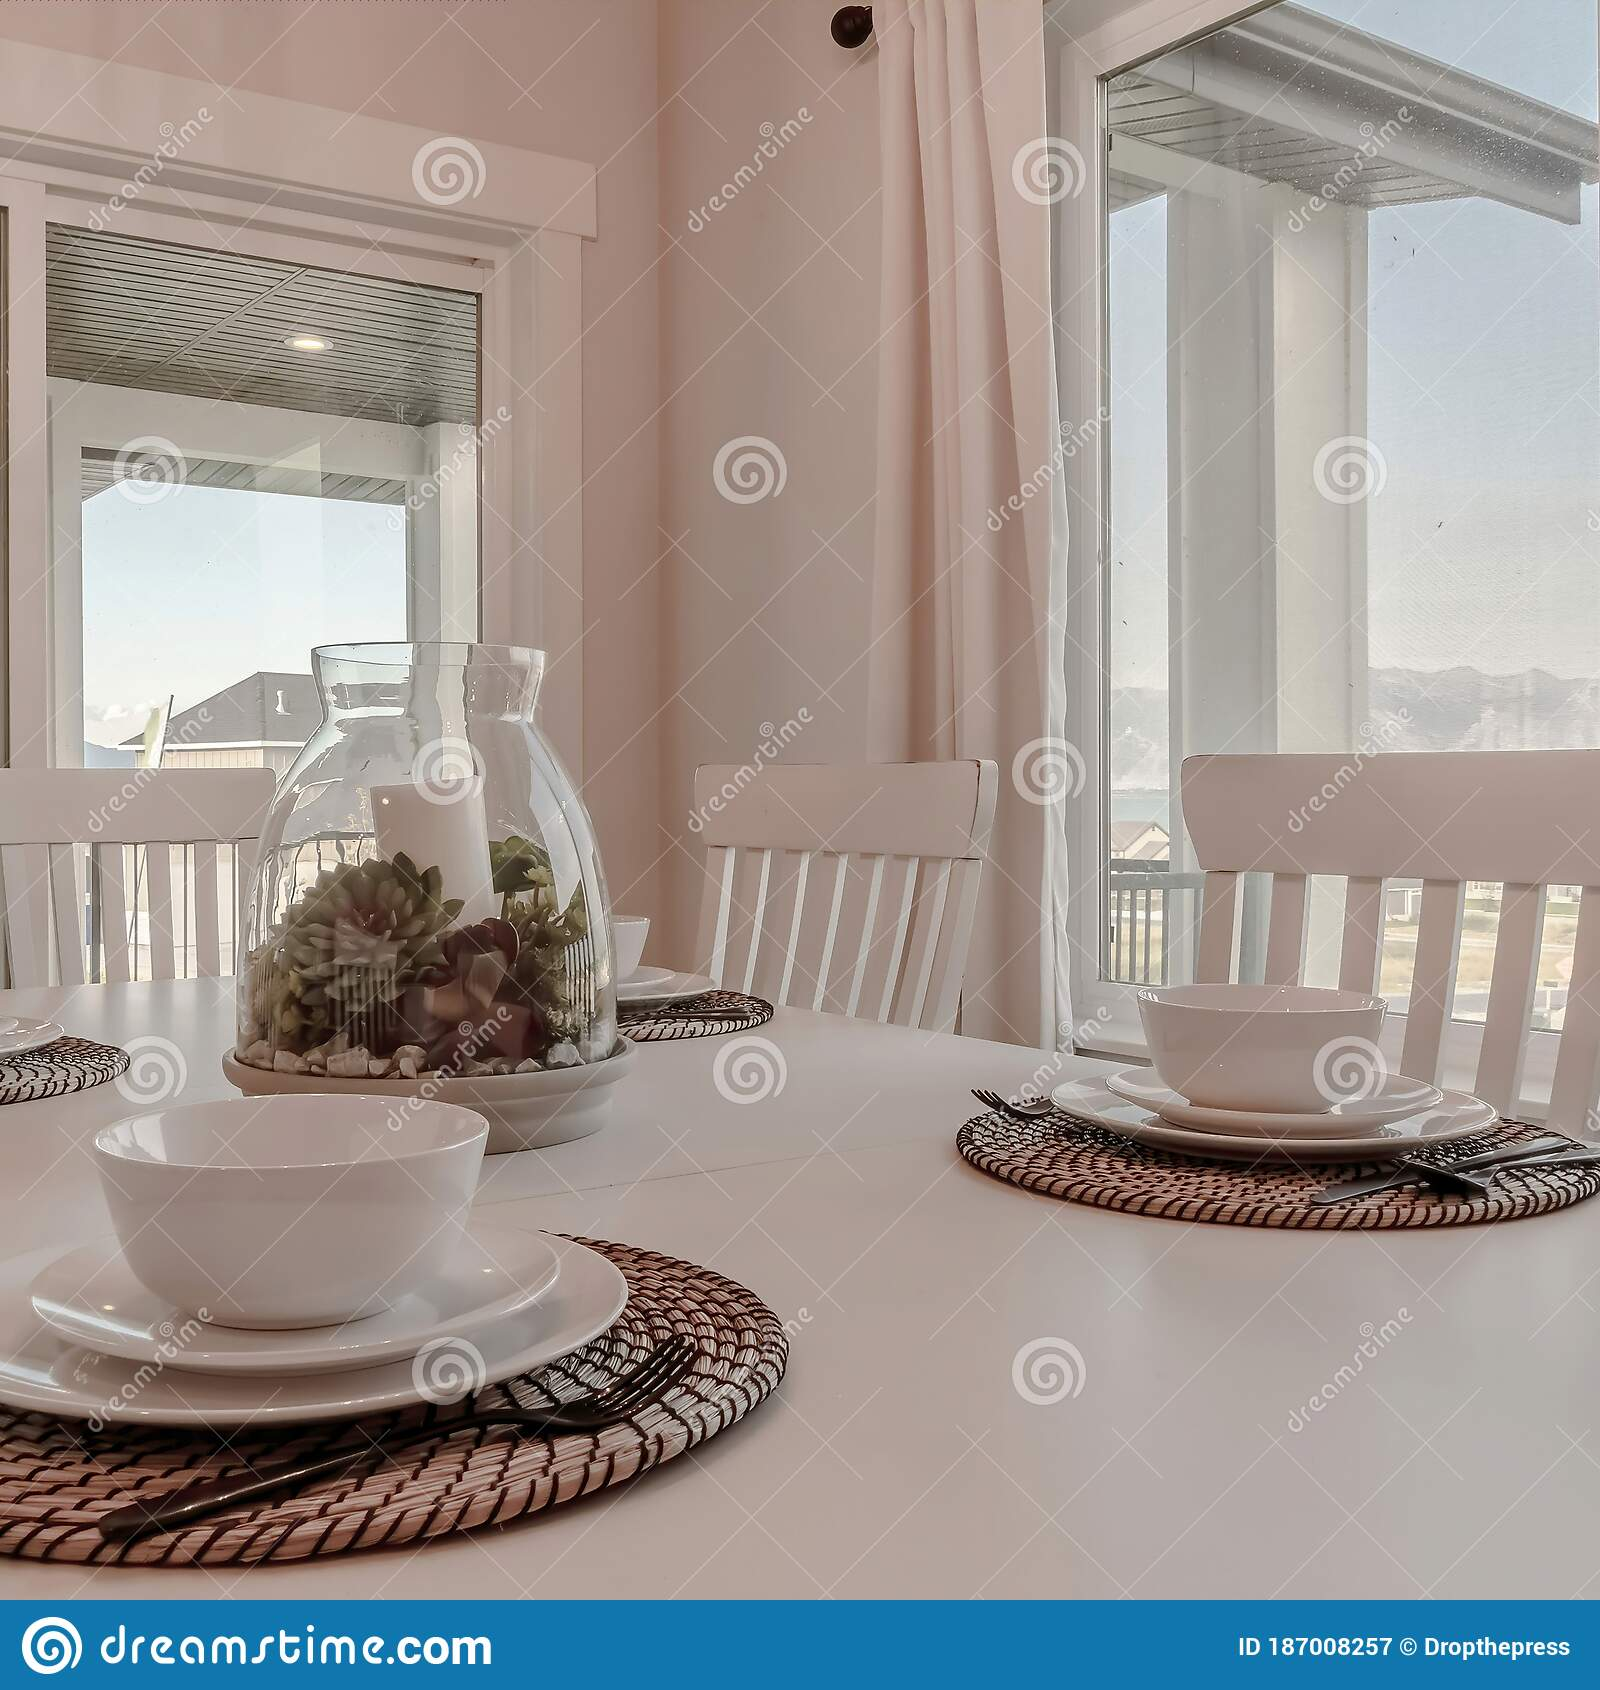 square dining table with tableware and woven placemat arranged around a centerpiece stock image image of mountain ornamental 187008257